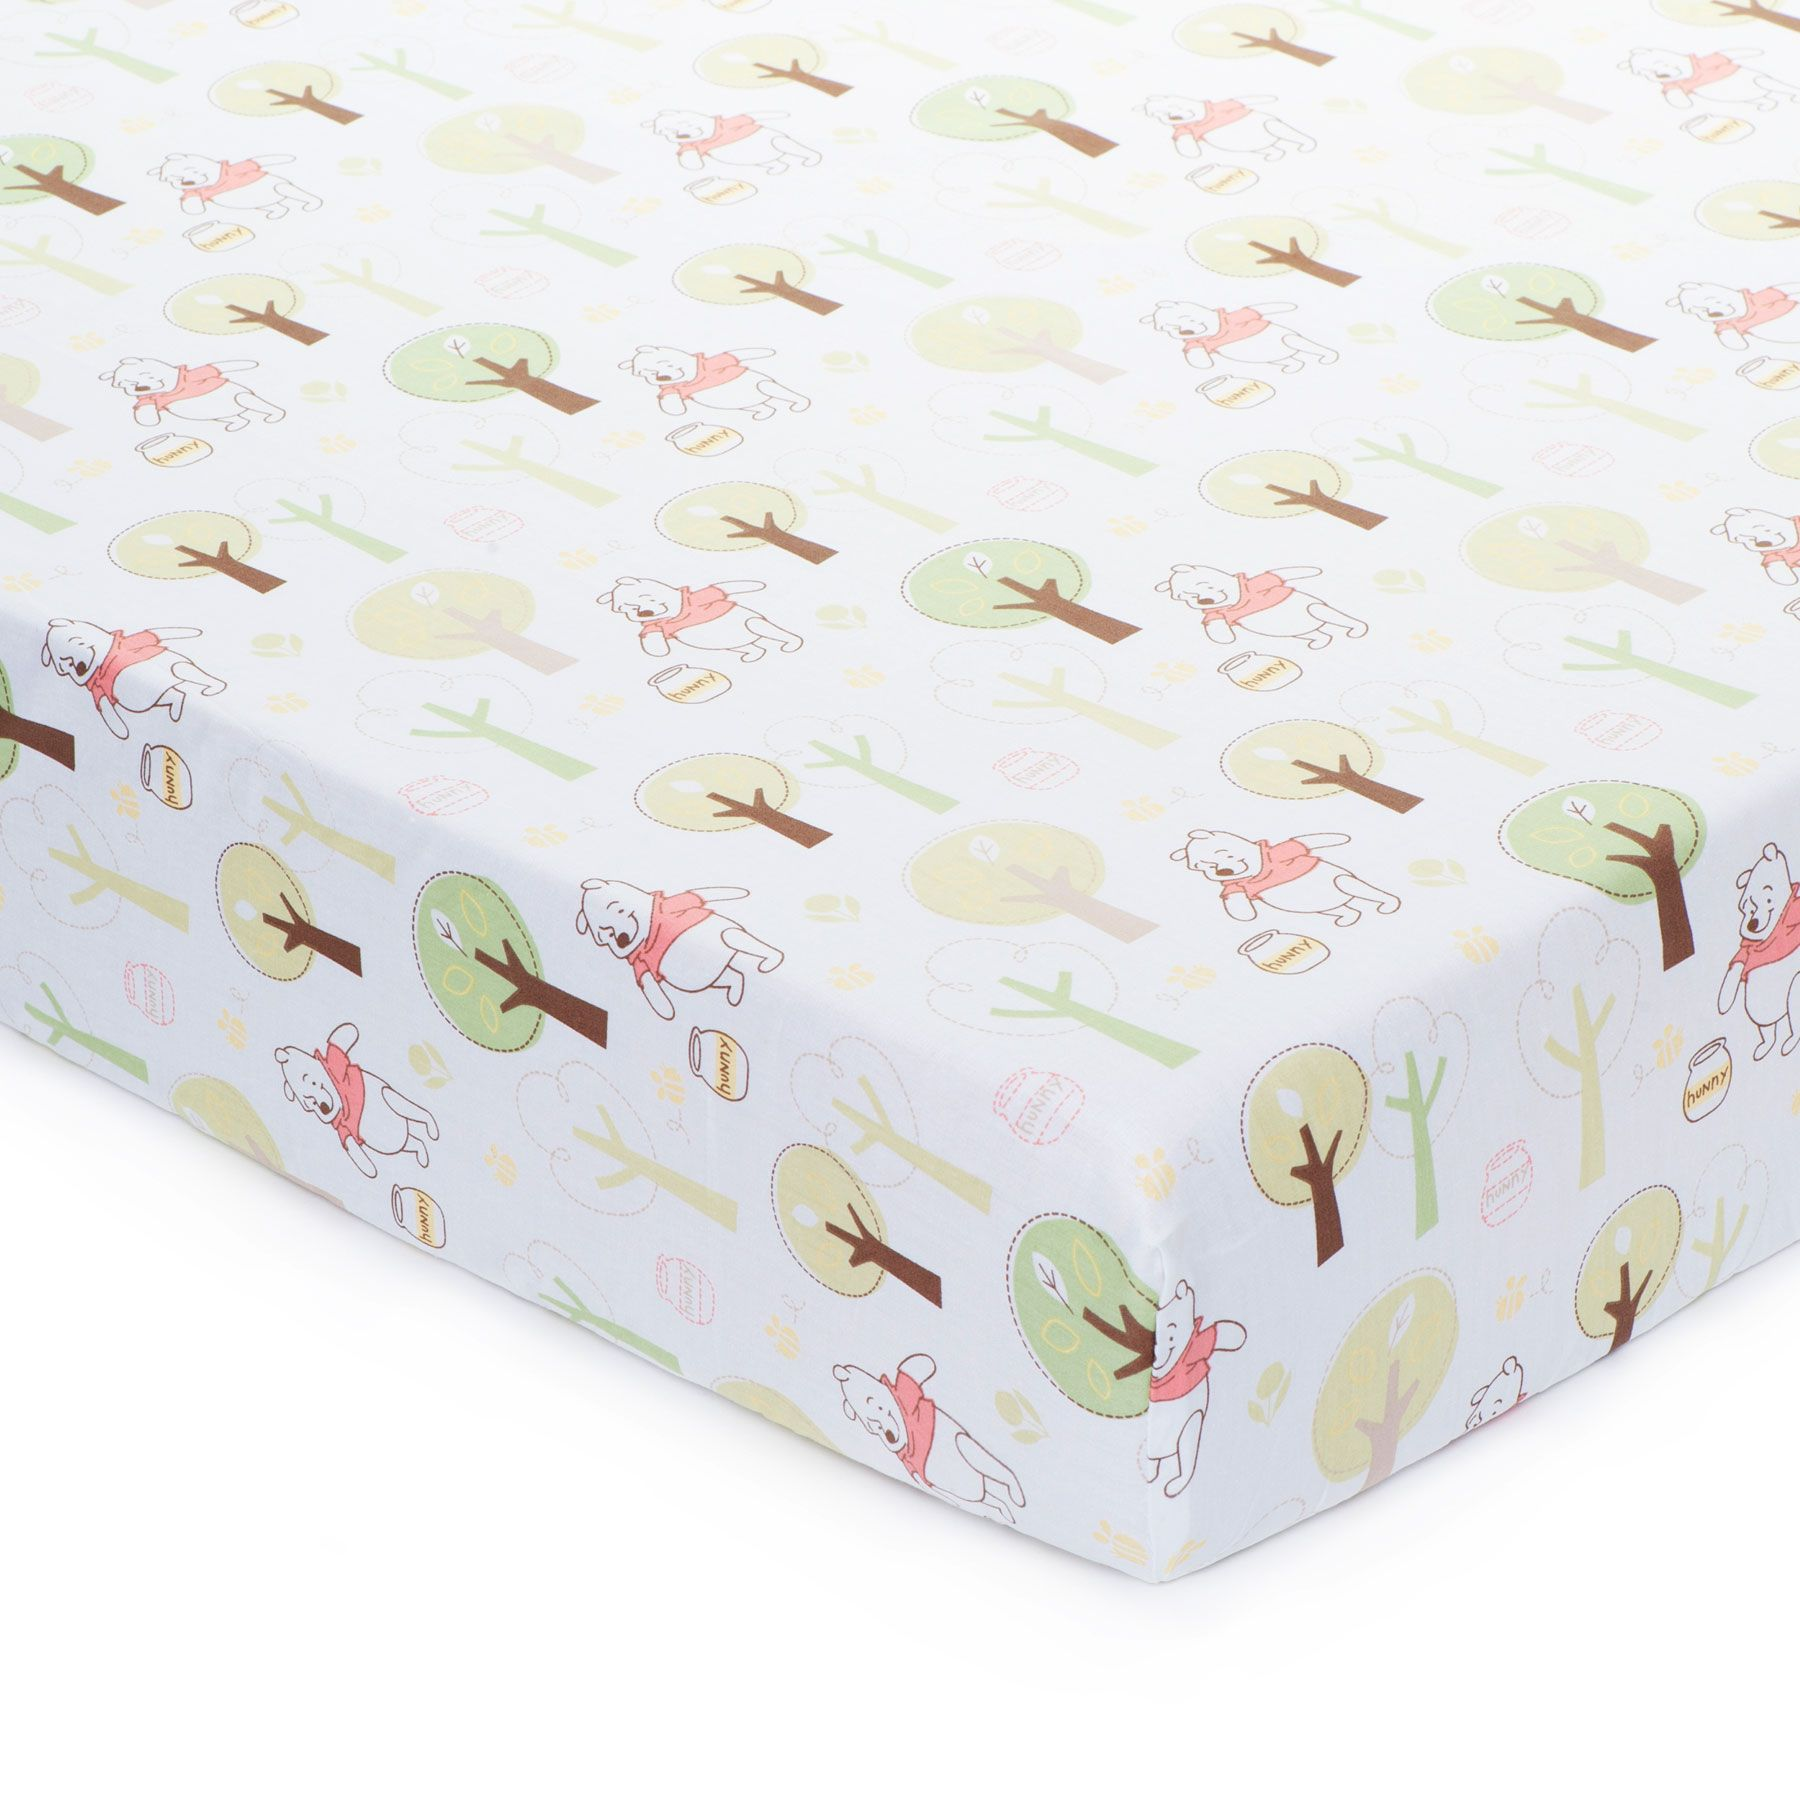 pooh and friends fitted crib sheet  nursery  pinterest  crib  - pooh and friends fitted crib sheet